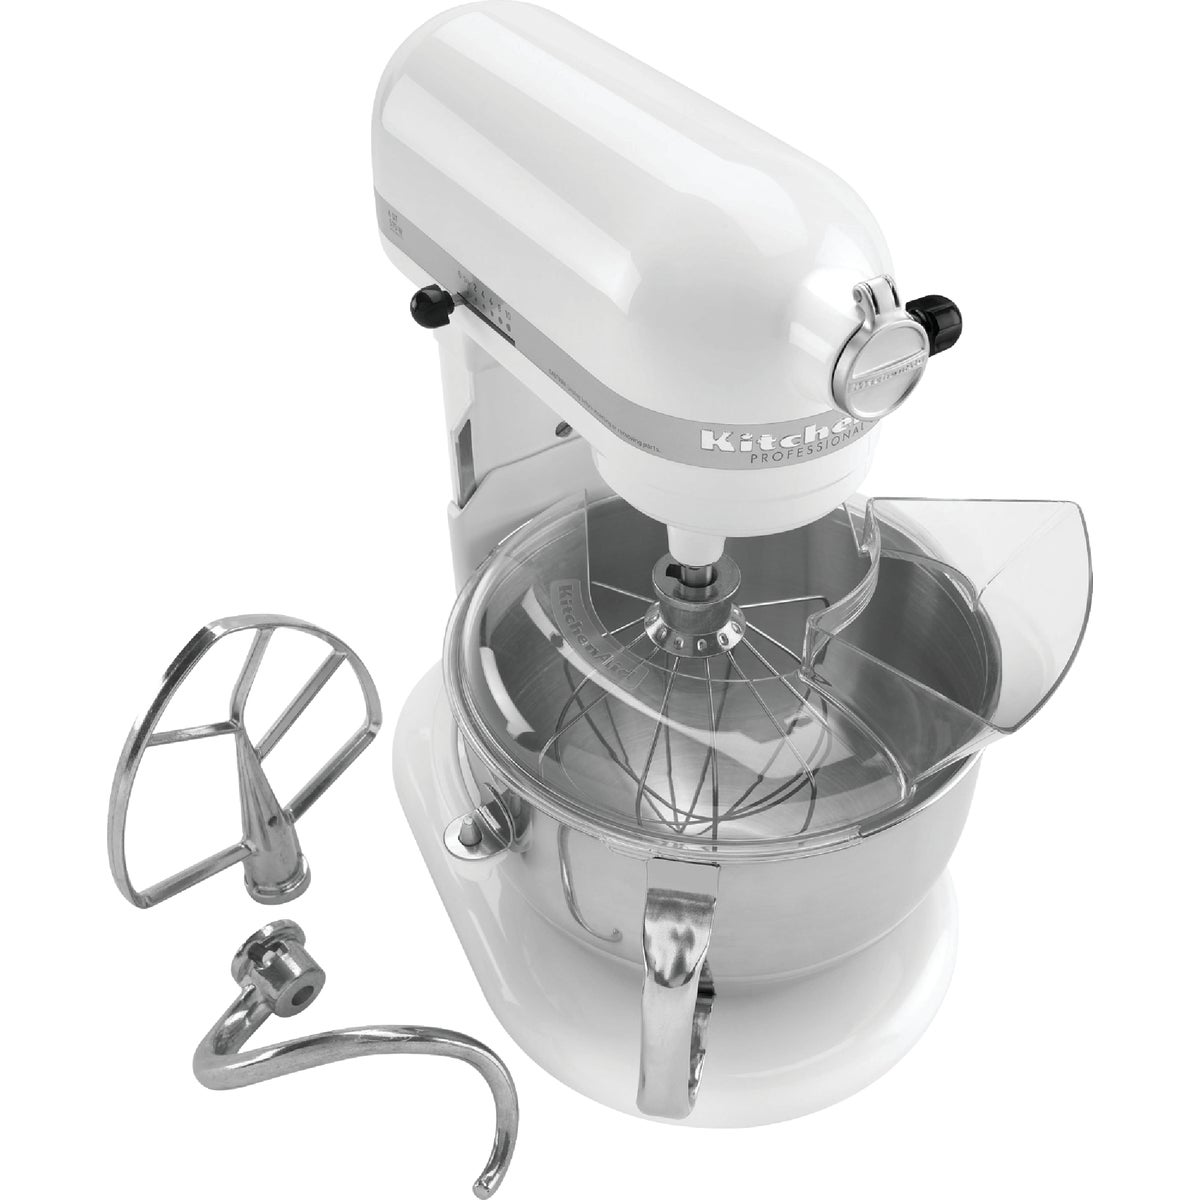 WHT PROFES STAND MIXER - KP26M1XWH by Kitchenaid Inc